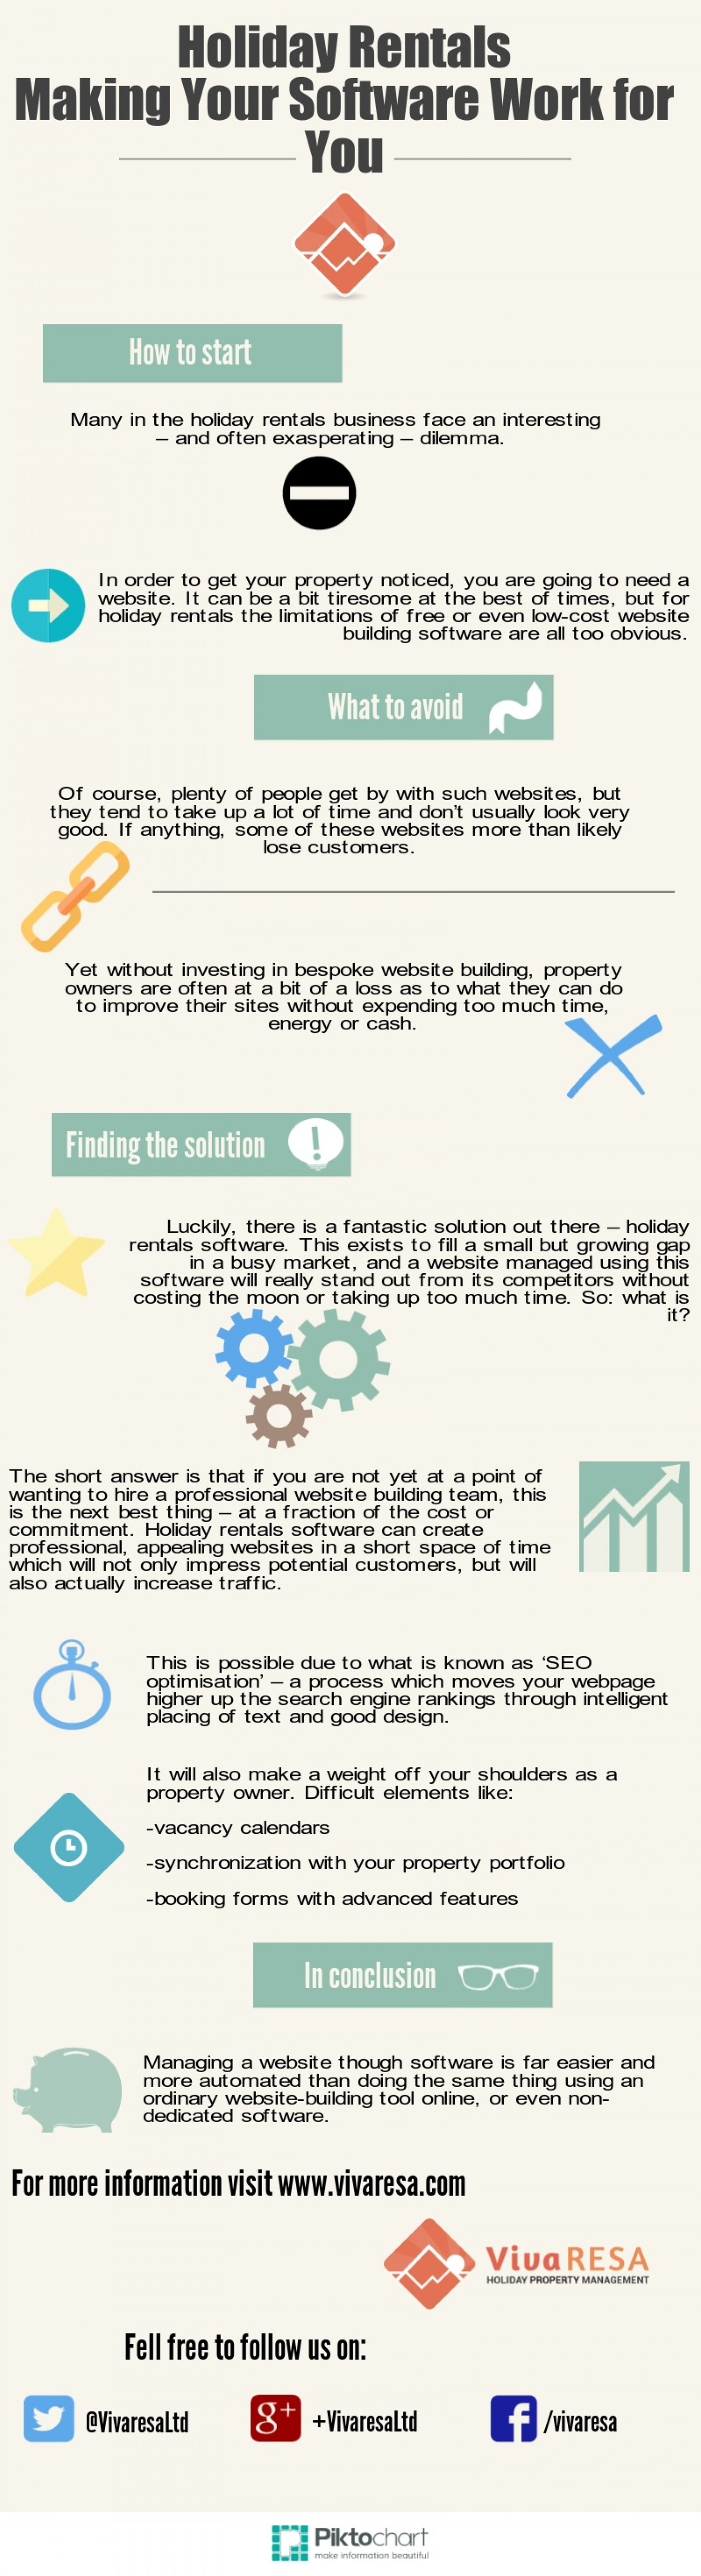 ​Holiday Rentals: Making Your Software Work for You Infographic